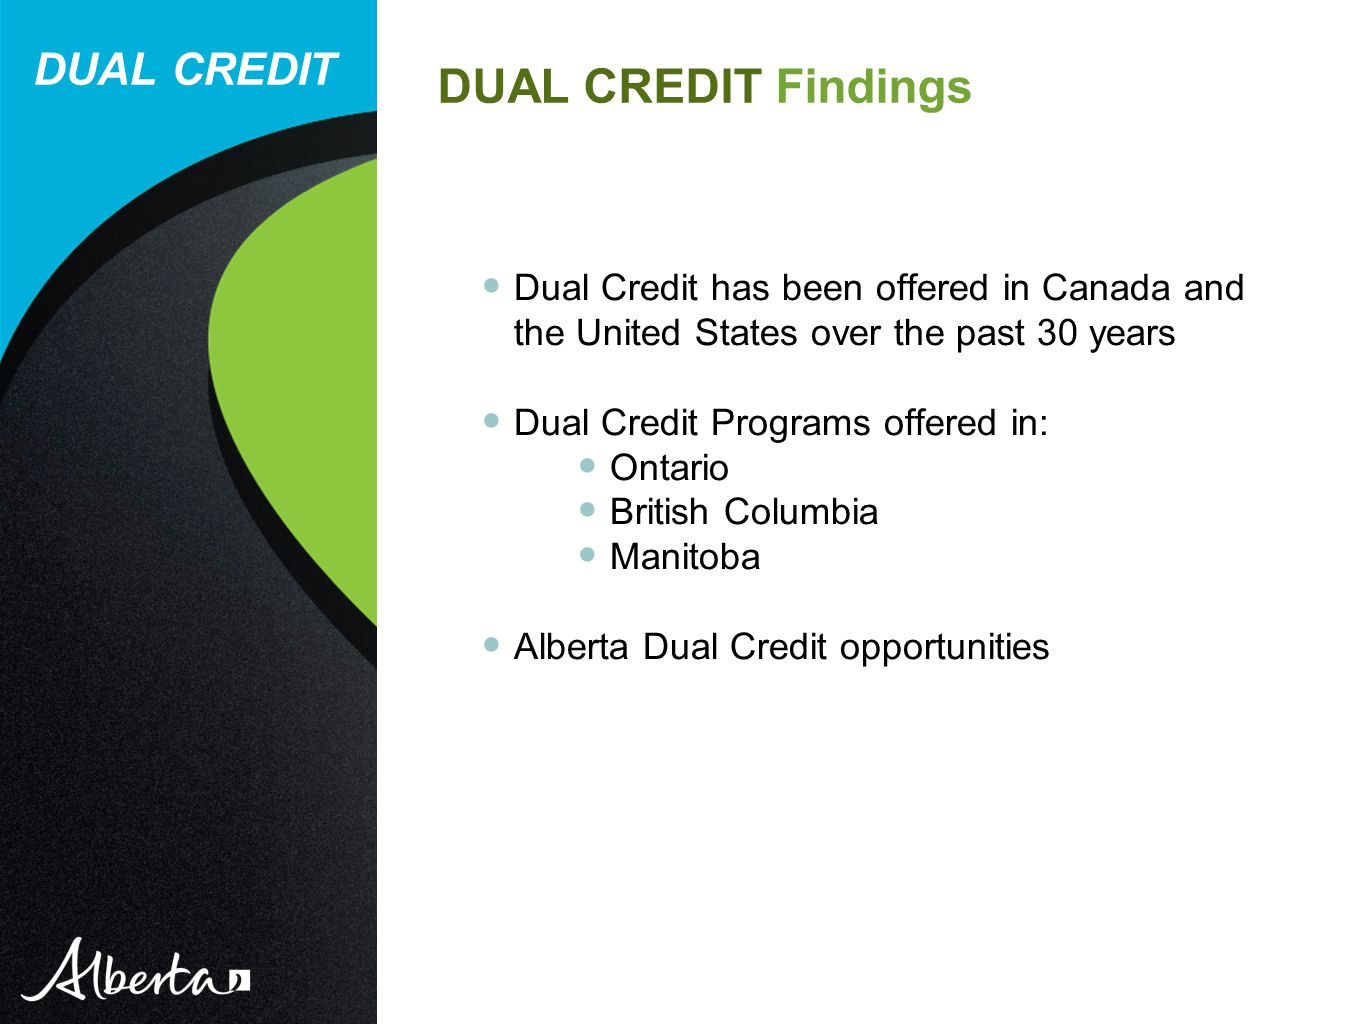 DUAL CREDIT Dual Credit has been offered in Canada and the United States over the past 30 years Dual Credit Programs offered in: Ontario British Columbia Manitoba Alberta Dual Credit opportunities DUAL CREDIT Findings